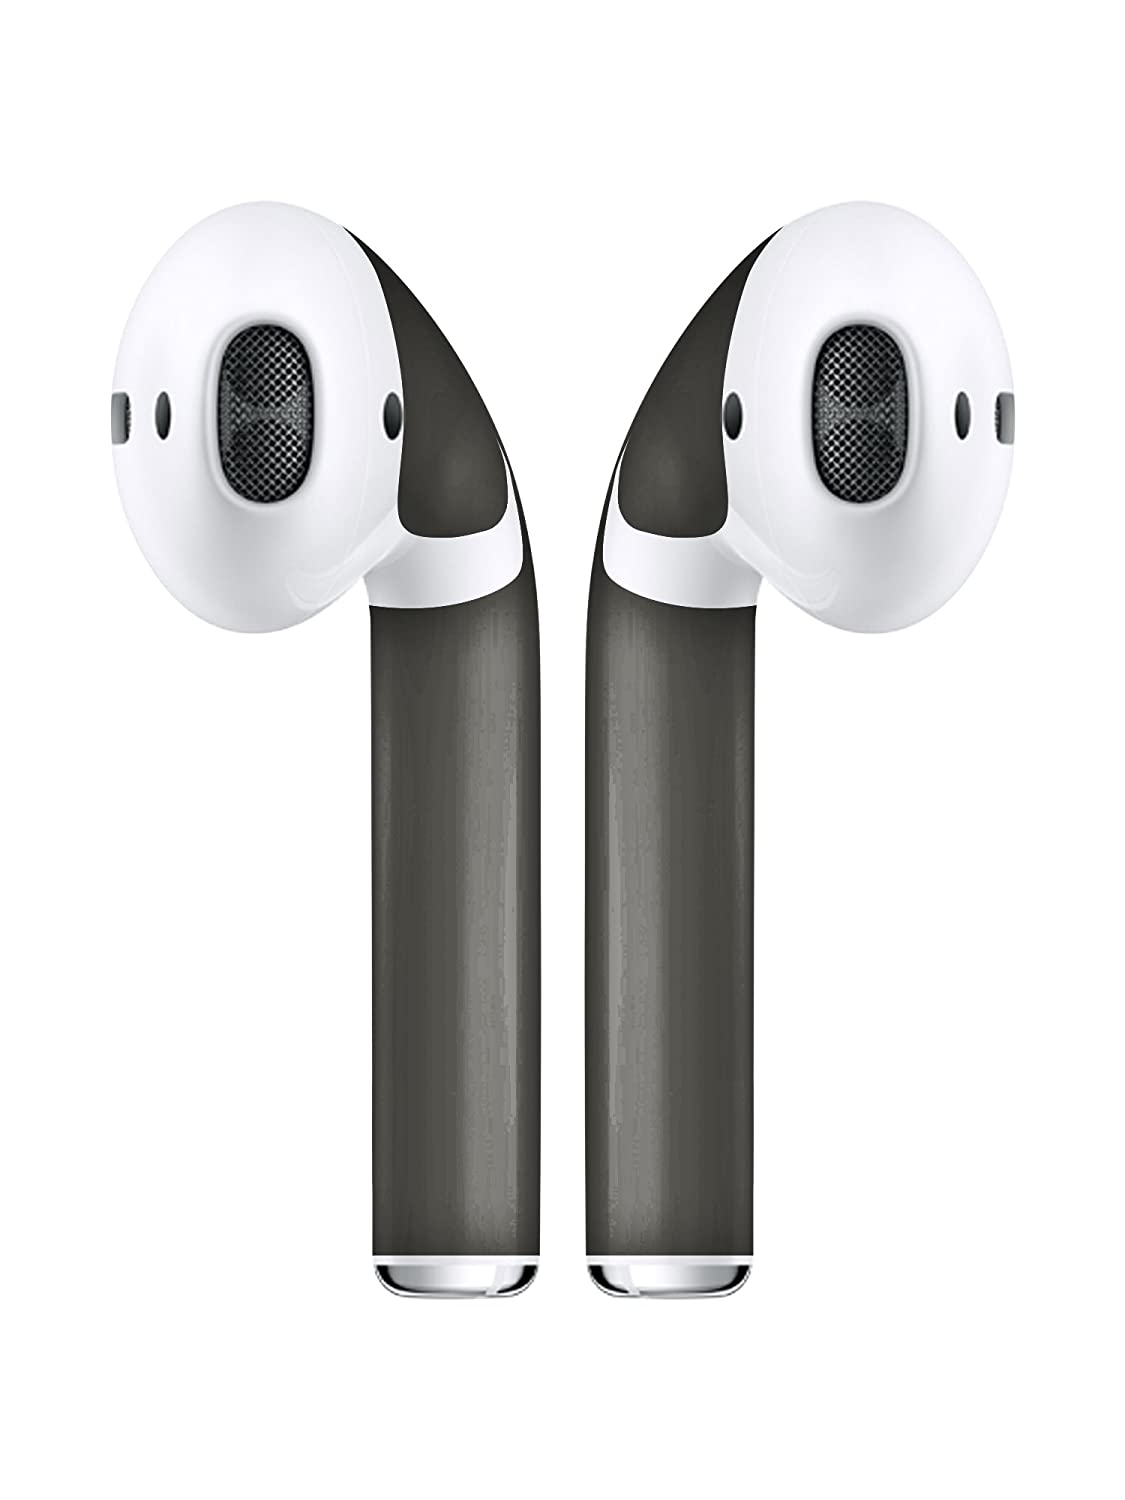 Airpod Skins Protective Wraps - Newest Single Piece Model - Free Lifetime Replacements Included - Maximum Coverage Available (Space Grey) 5GY04